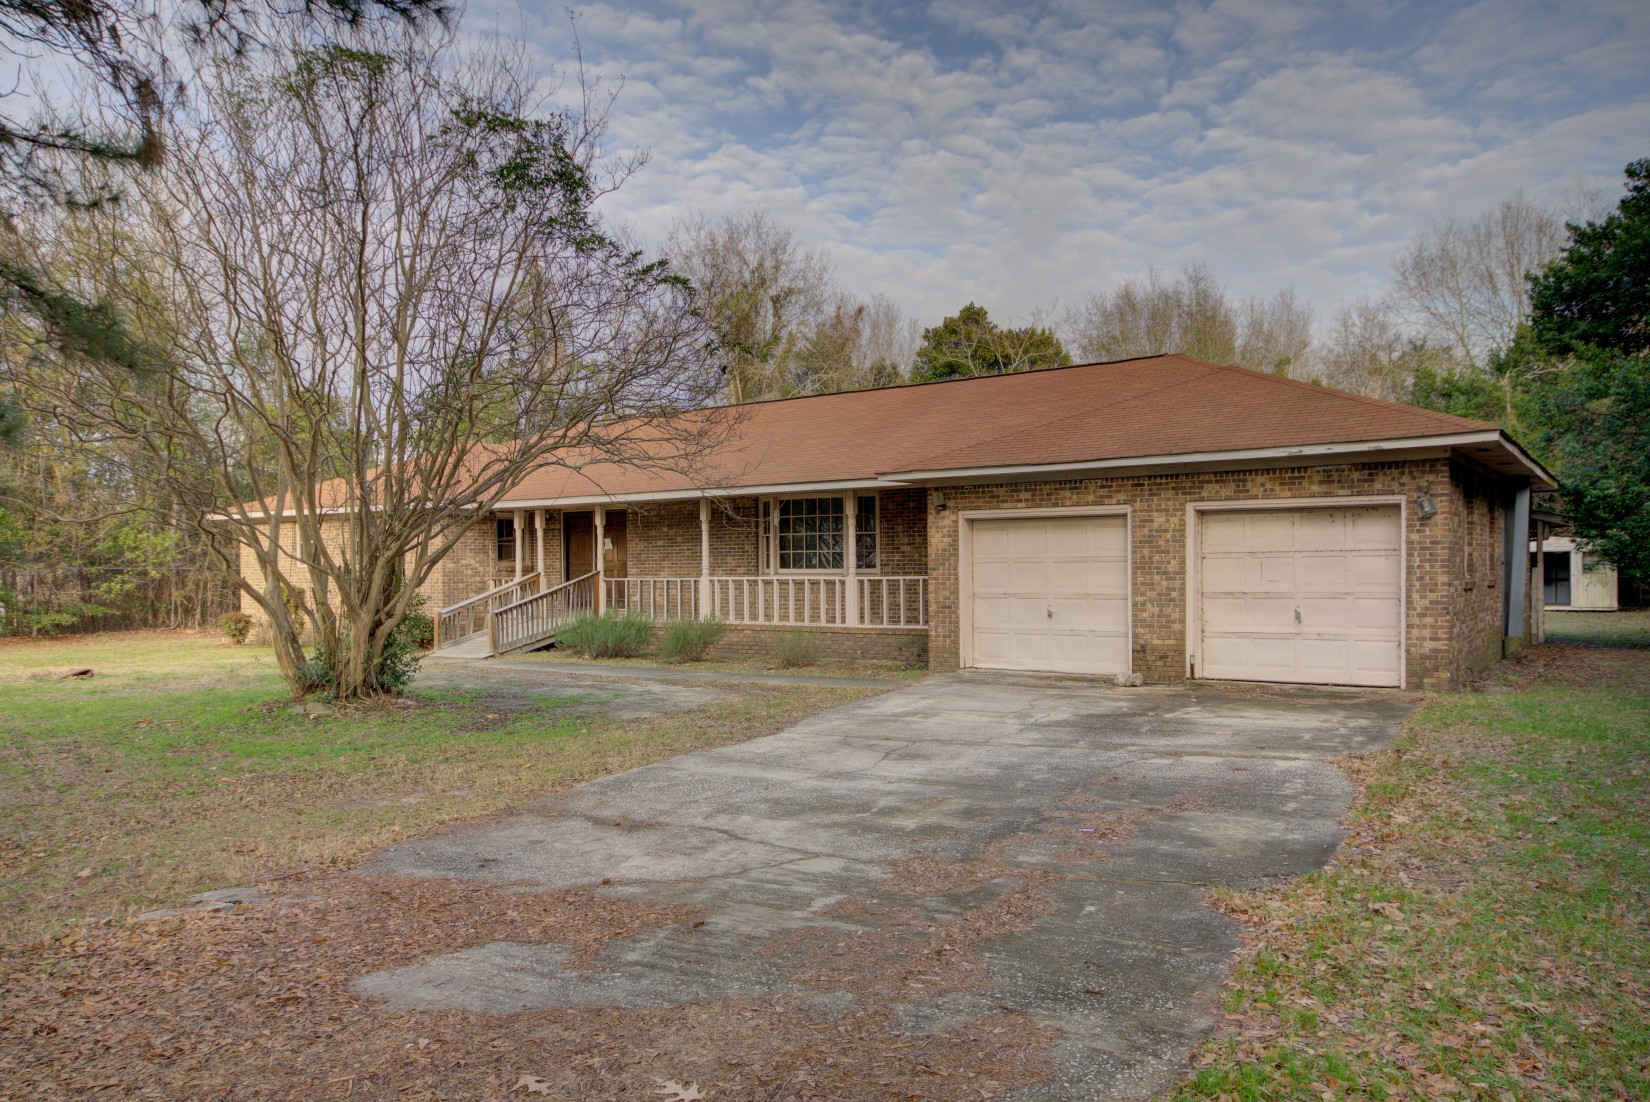 Sumter County, SC Foreclosures & Foreclosed Homes | RealtyTrac